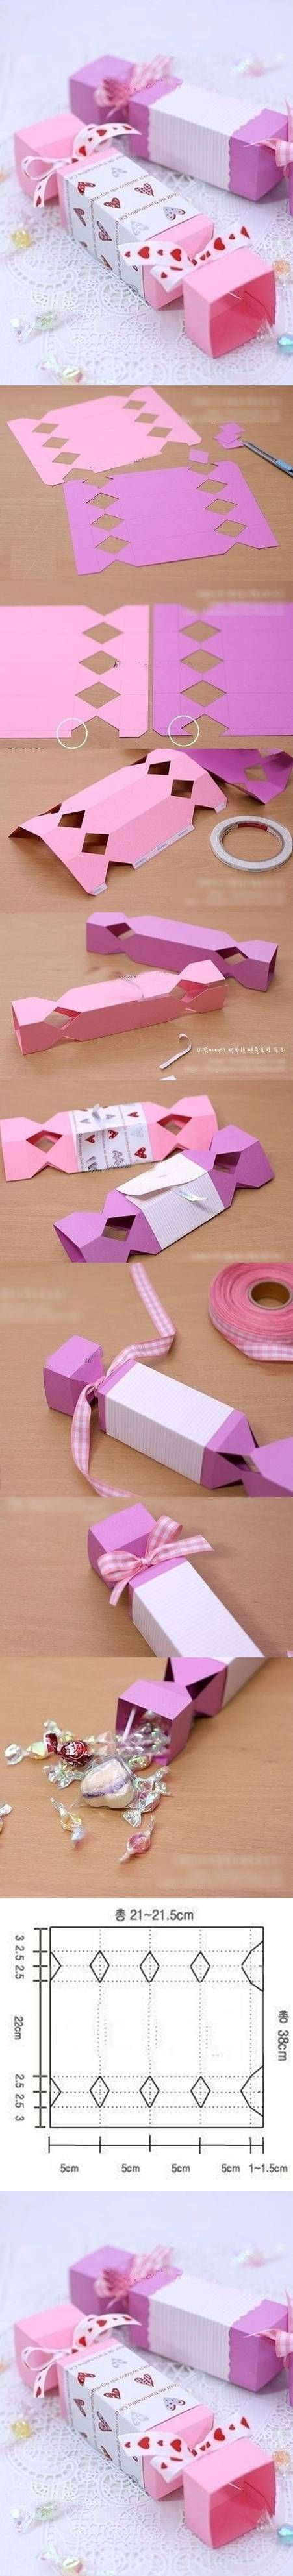 Diy cute candy gift box girly cute pink diy diy ideas diy crafts do diy cute candy gift box girly cute pink diy diy ideas diy crafts do it yourself solutioingenieria Image collections